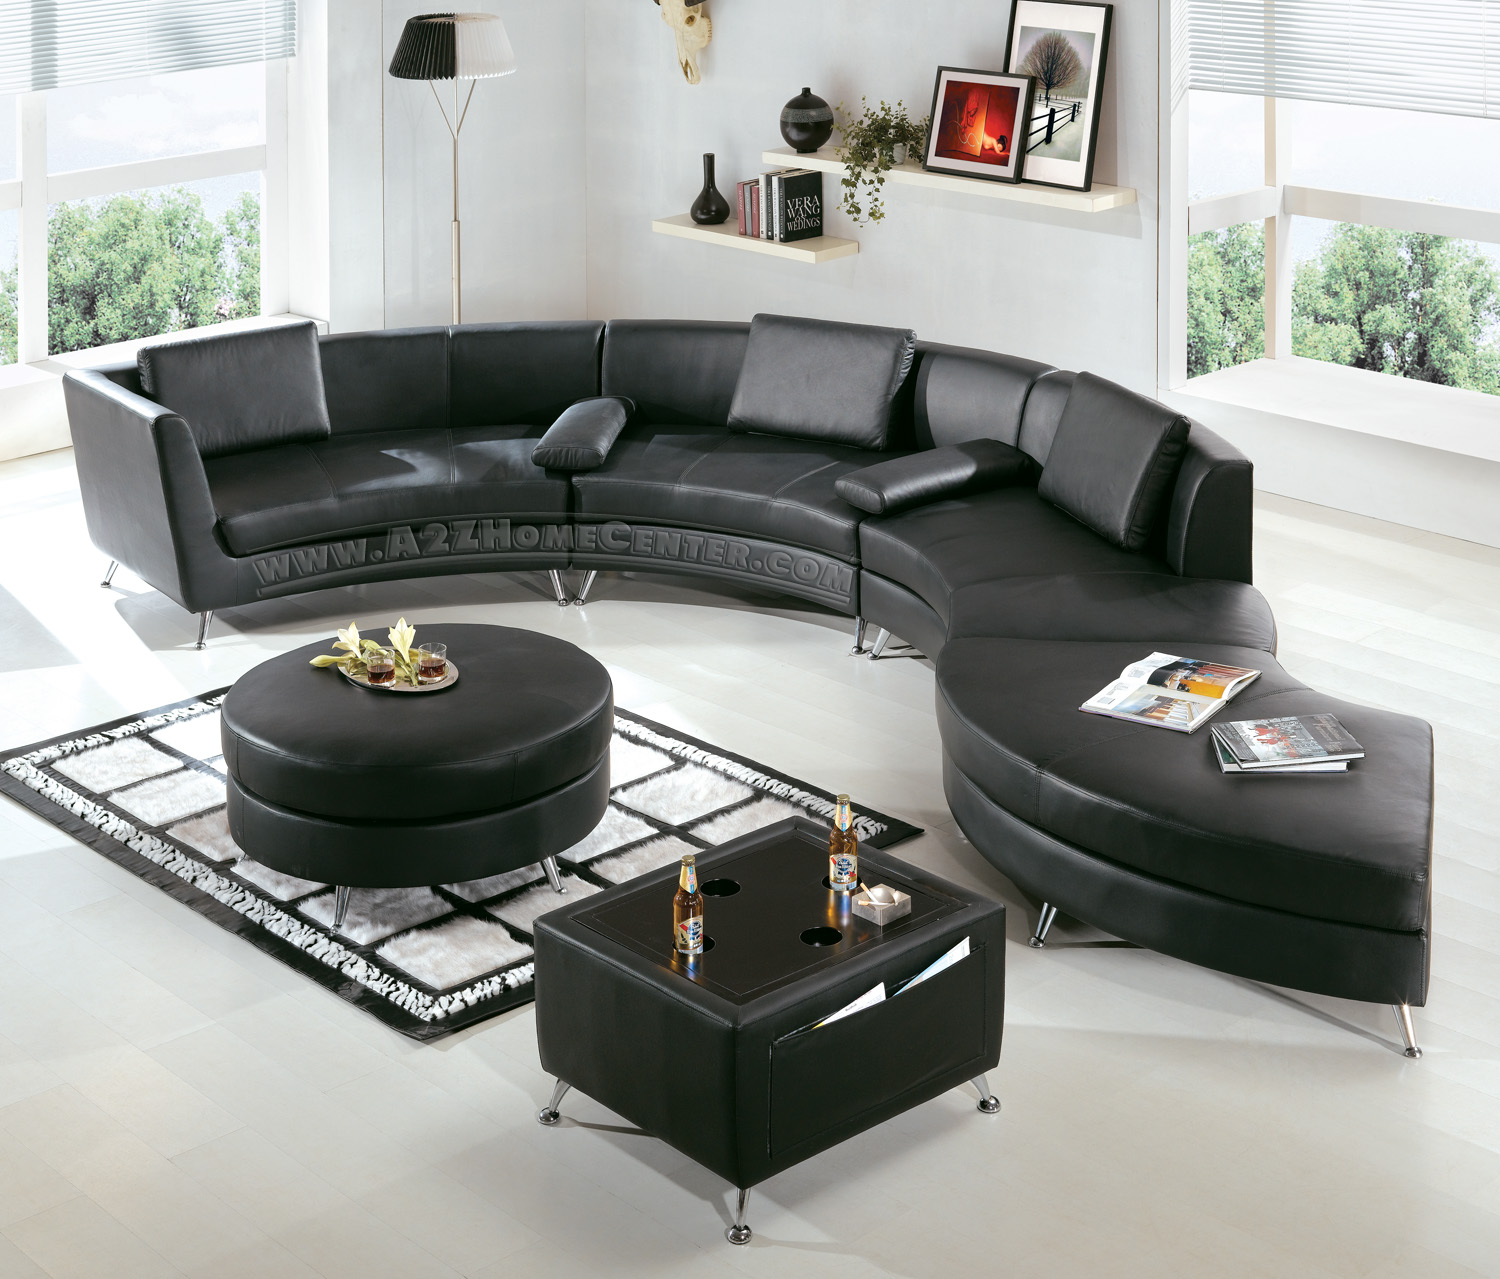 Contemporary Furniture Design modern furniture designs for your home | modern home design